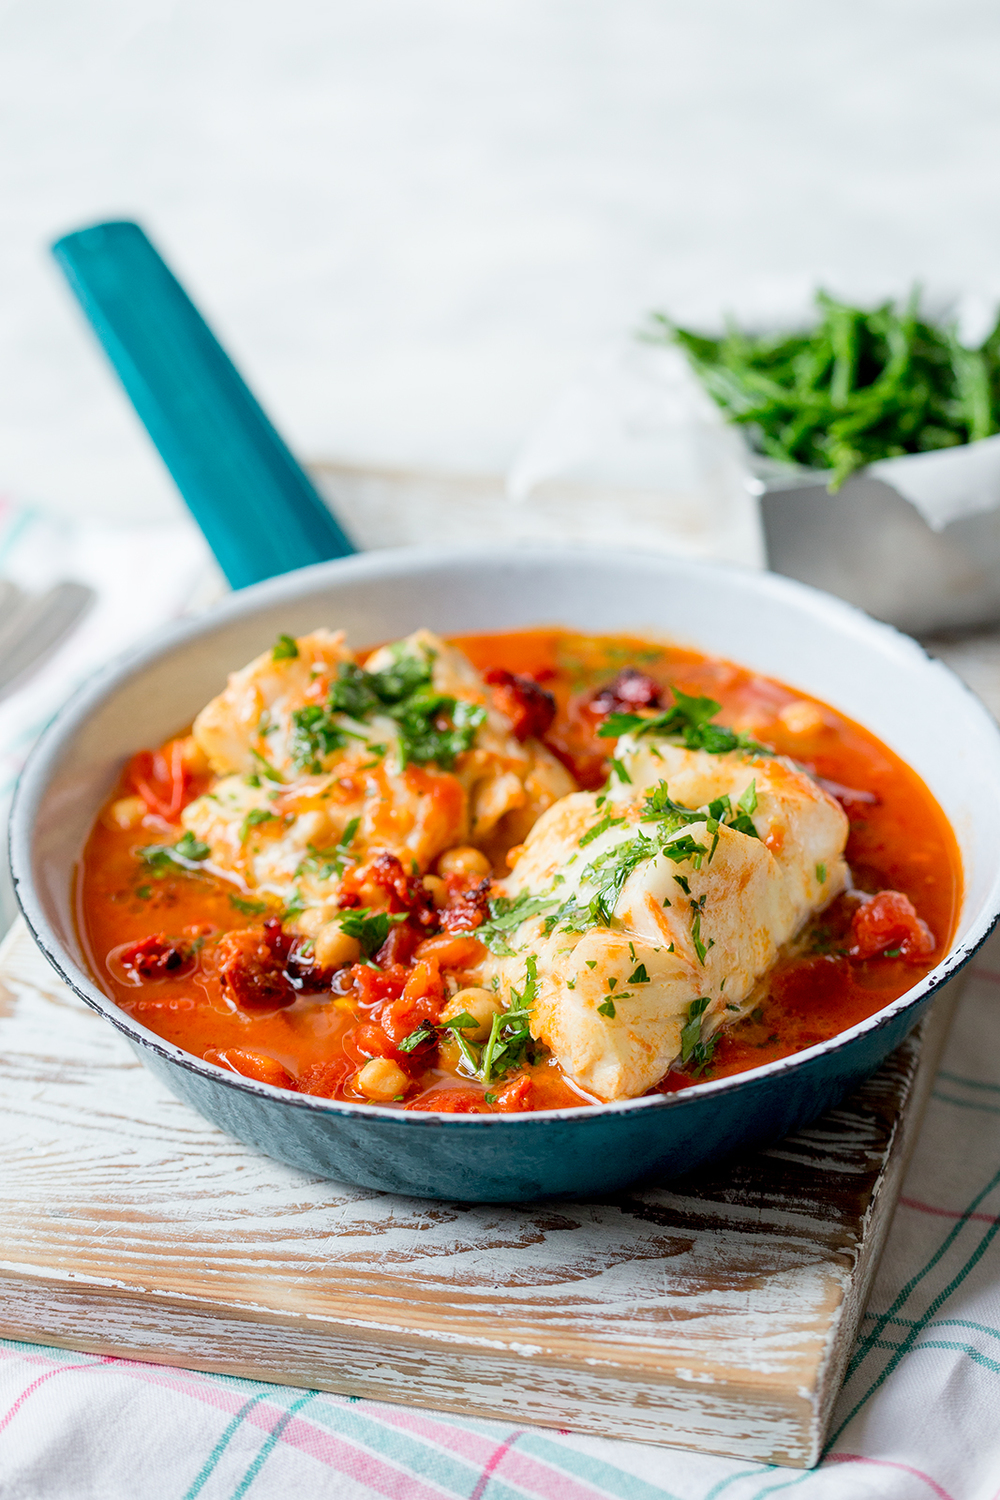 Spanish cod one pot the kitchen alchemist for How to cook cod fish in a pan